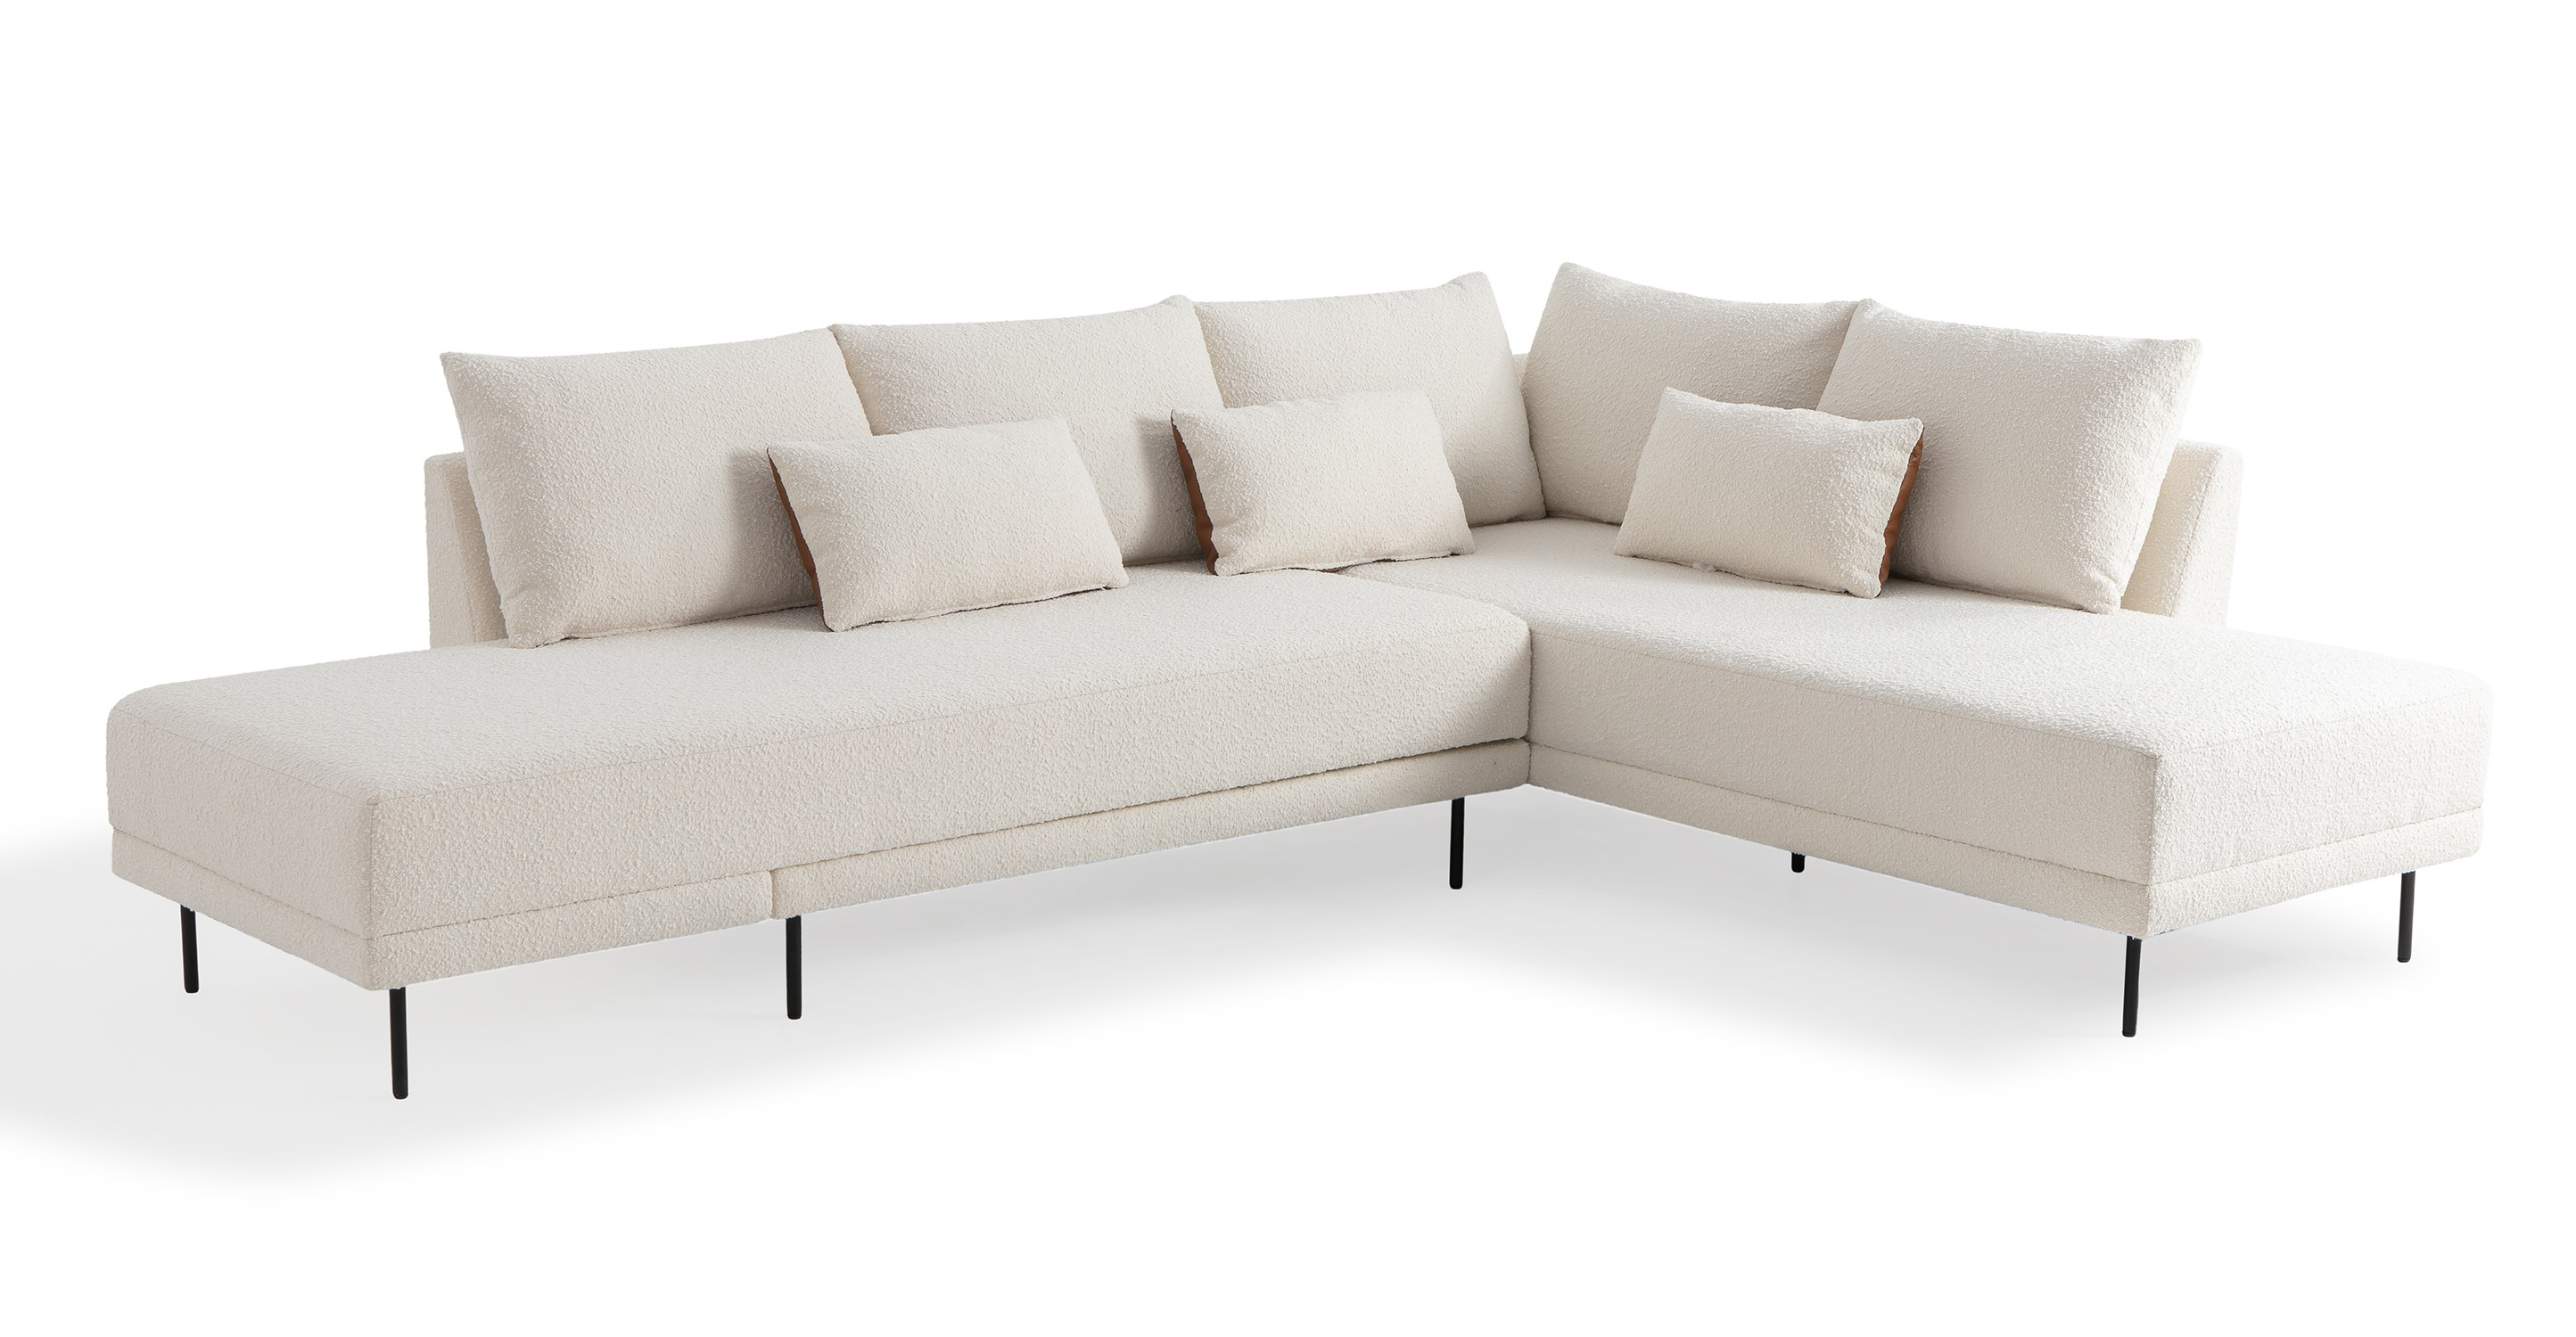 "Stash 117"" Fabric Sectional Sleeper Right, Blanc & Bronze"